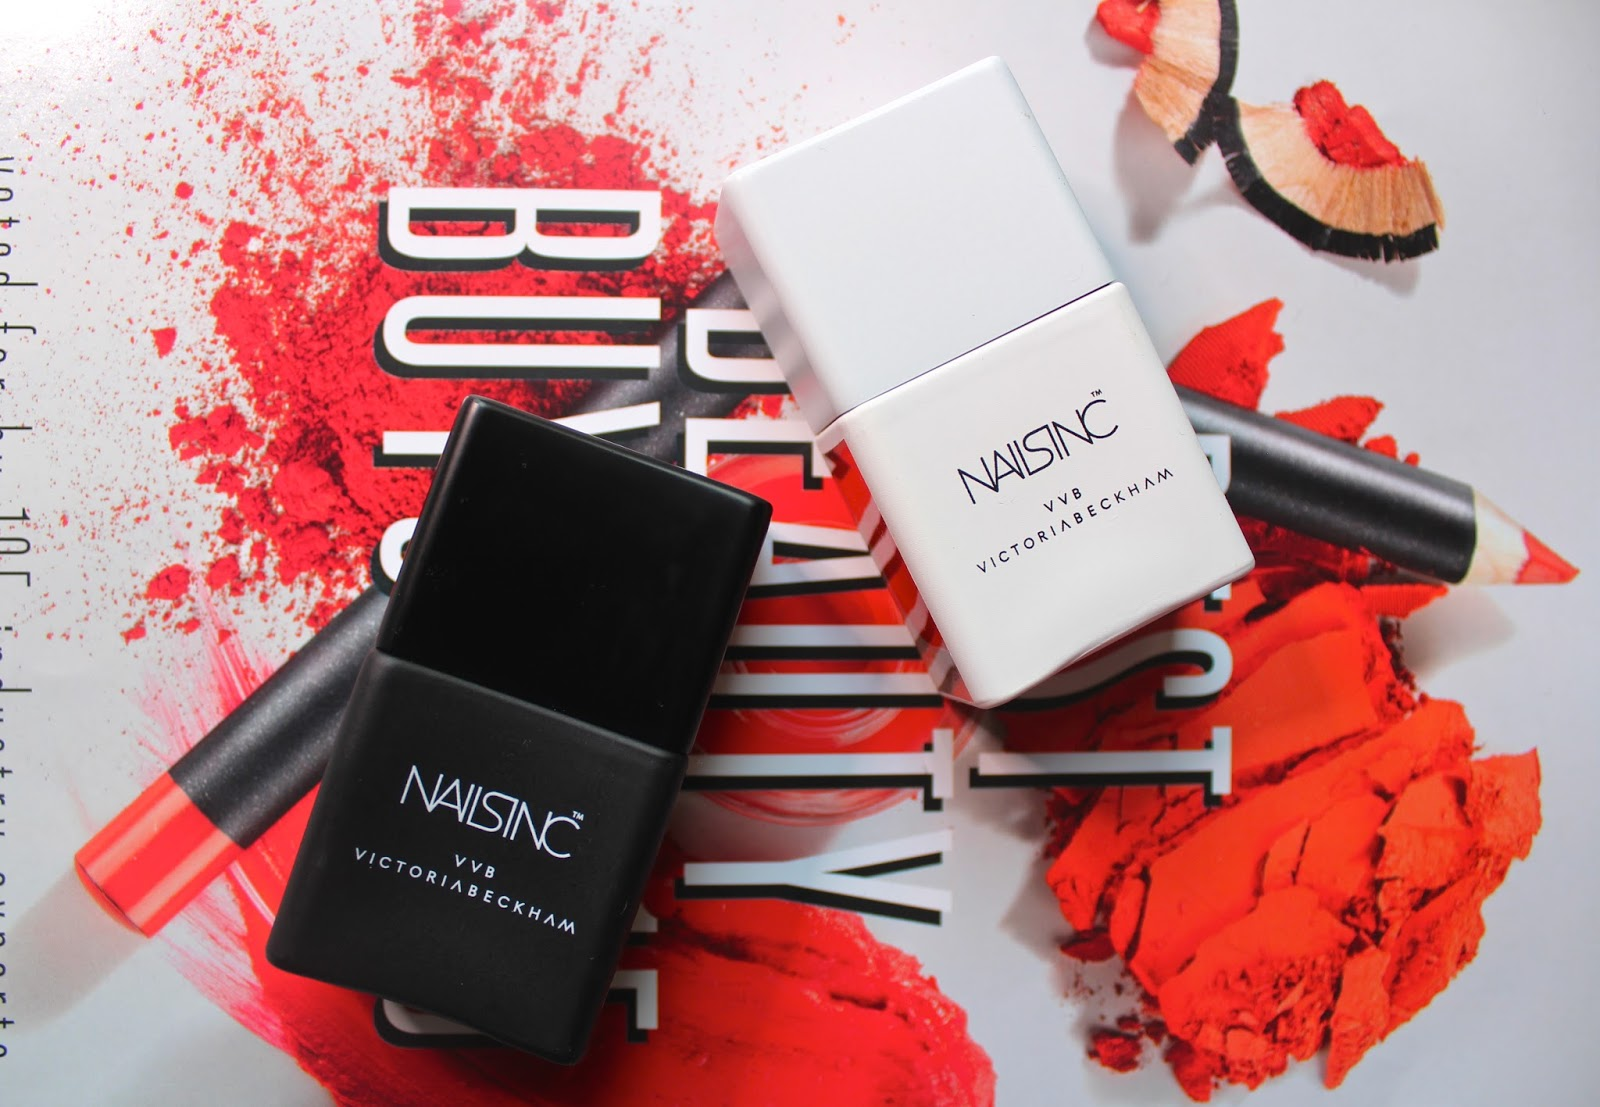 victoria beckham x nails inc polish varnish vvb nails nail art selfridges london celebrity blogger blog blogger bbloggers beauty instagram potd instagood bamboo white judo red